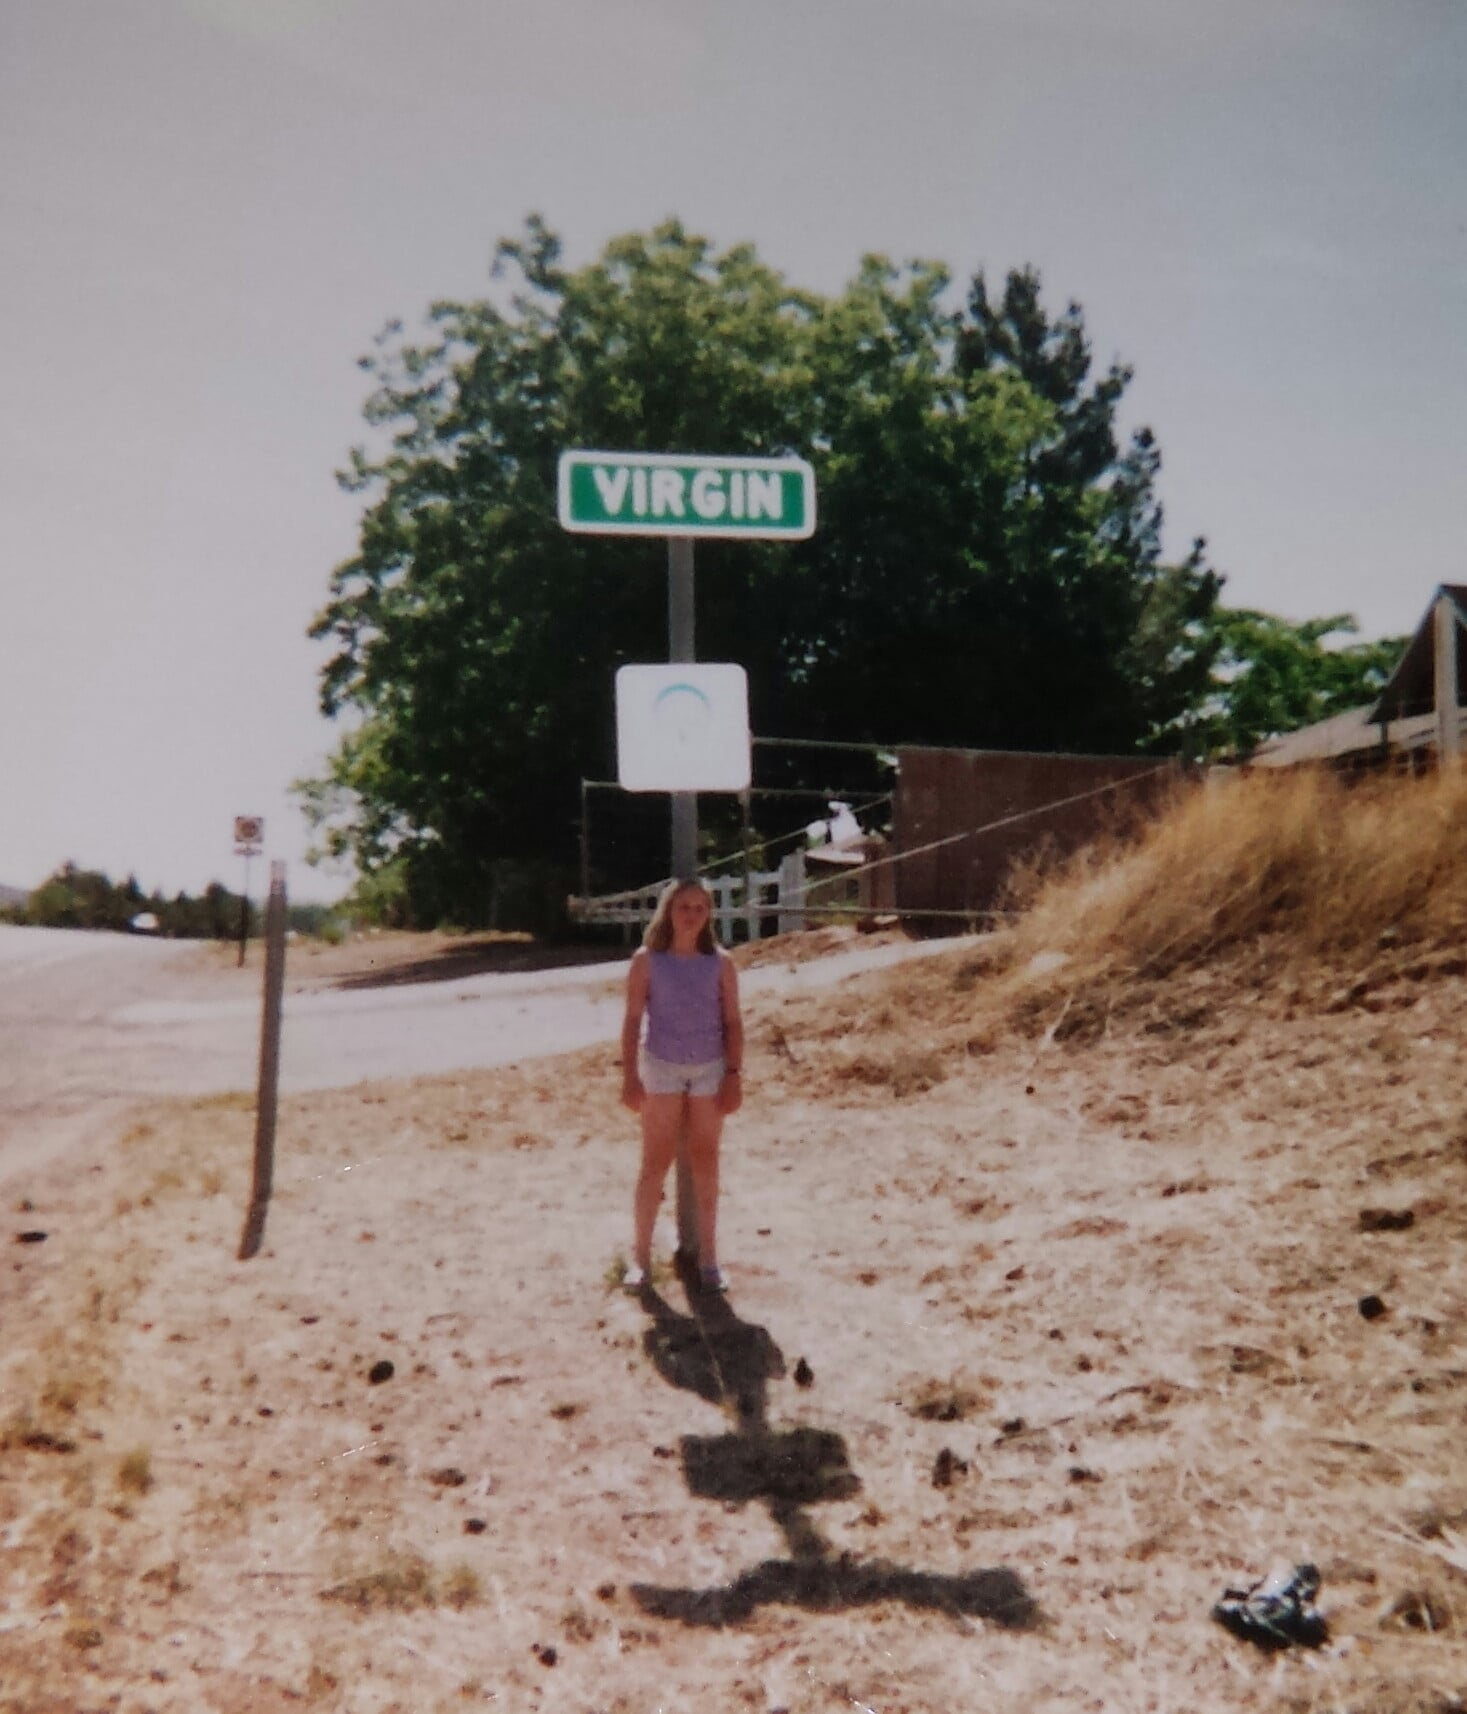 """Just me at 12, taking a road trip with my parents and apparently their sense of humor."" Source: Reddit user catword"